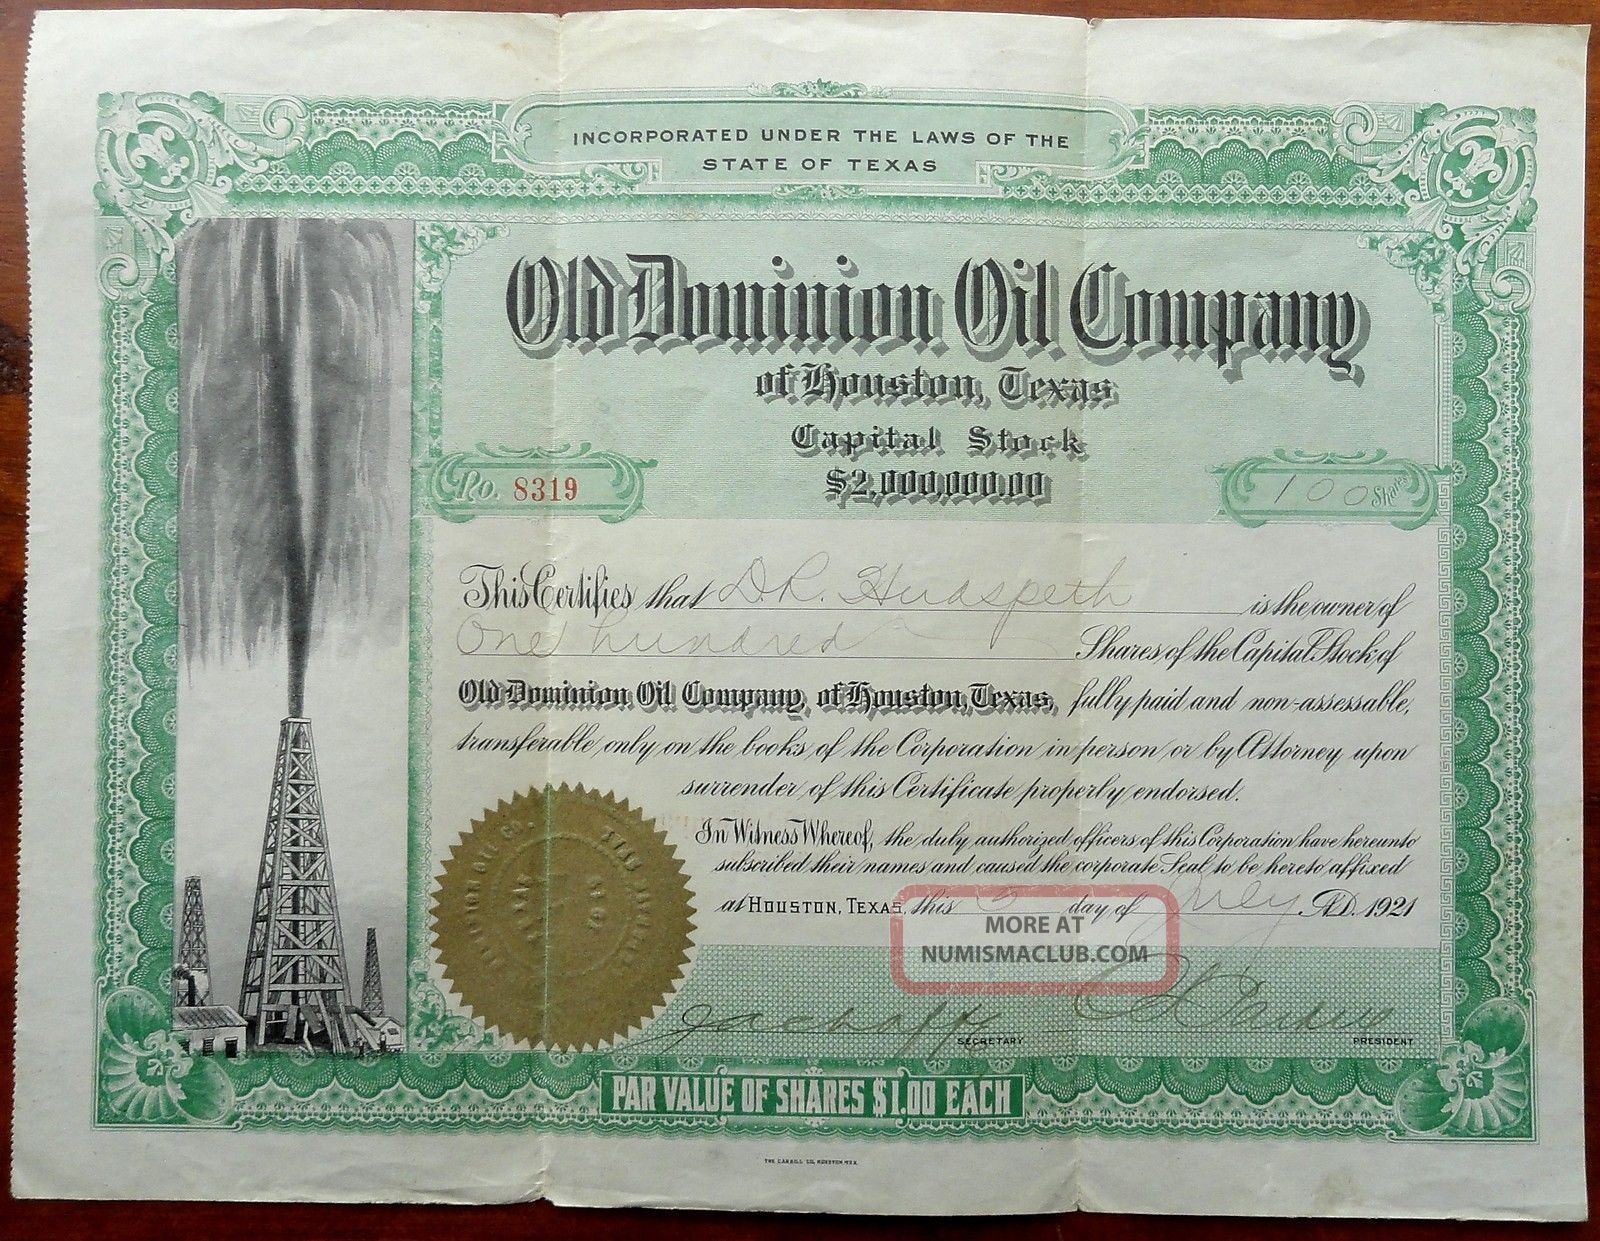 Vintage Old Dominion Oil Co Houston,  Texas Tex Stock Certificate 1921 Stocks & Bonds, Scripophily photo